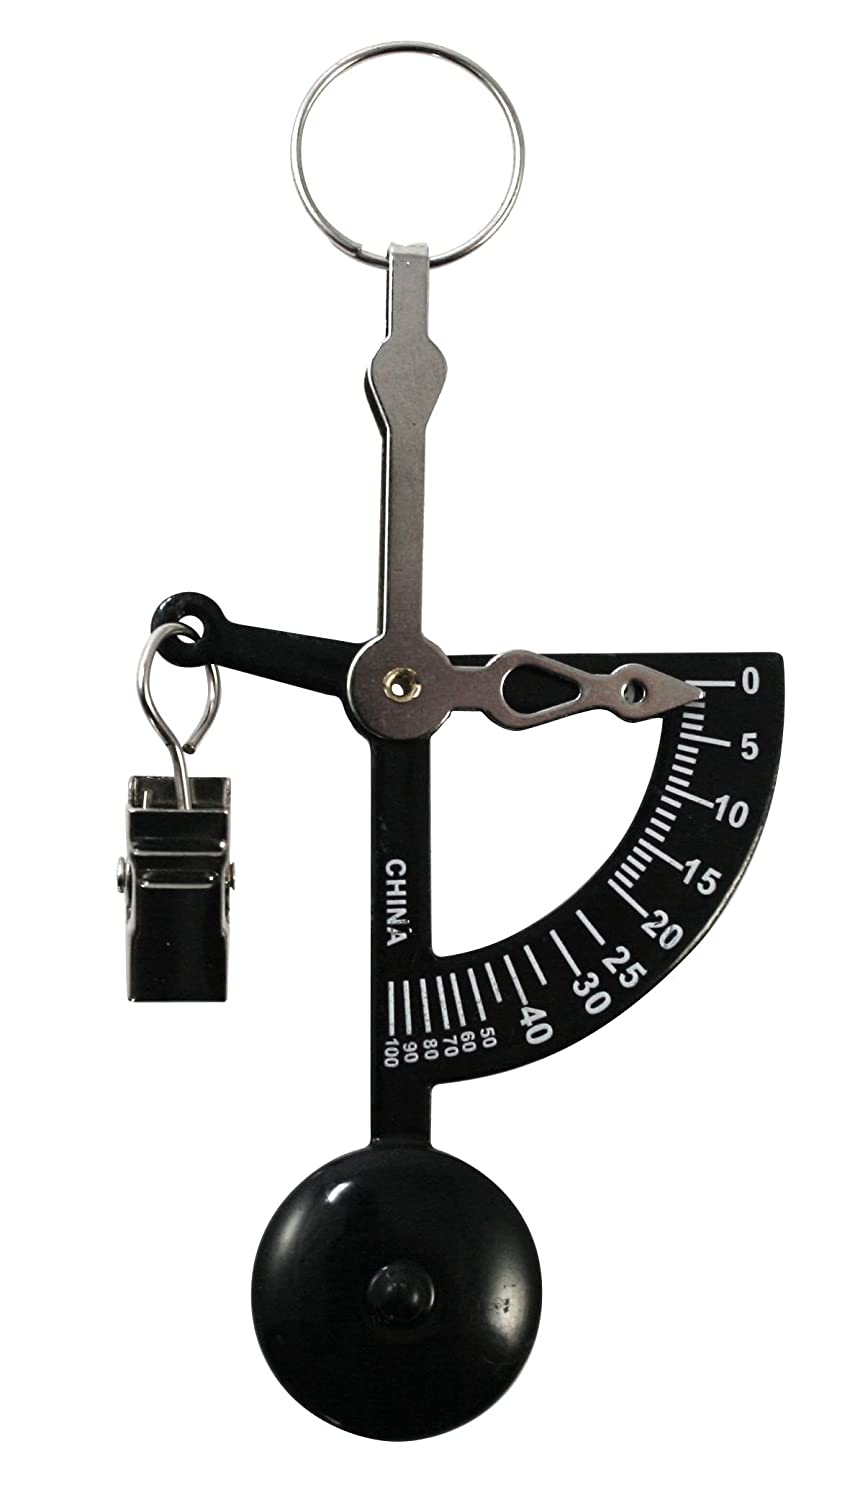 amazoncom american weigh scales amwhandblk black hand letter scale with 100g and 4oz capacity kitchen u0026 dining